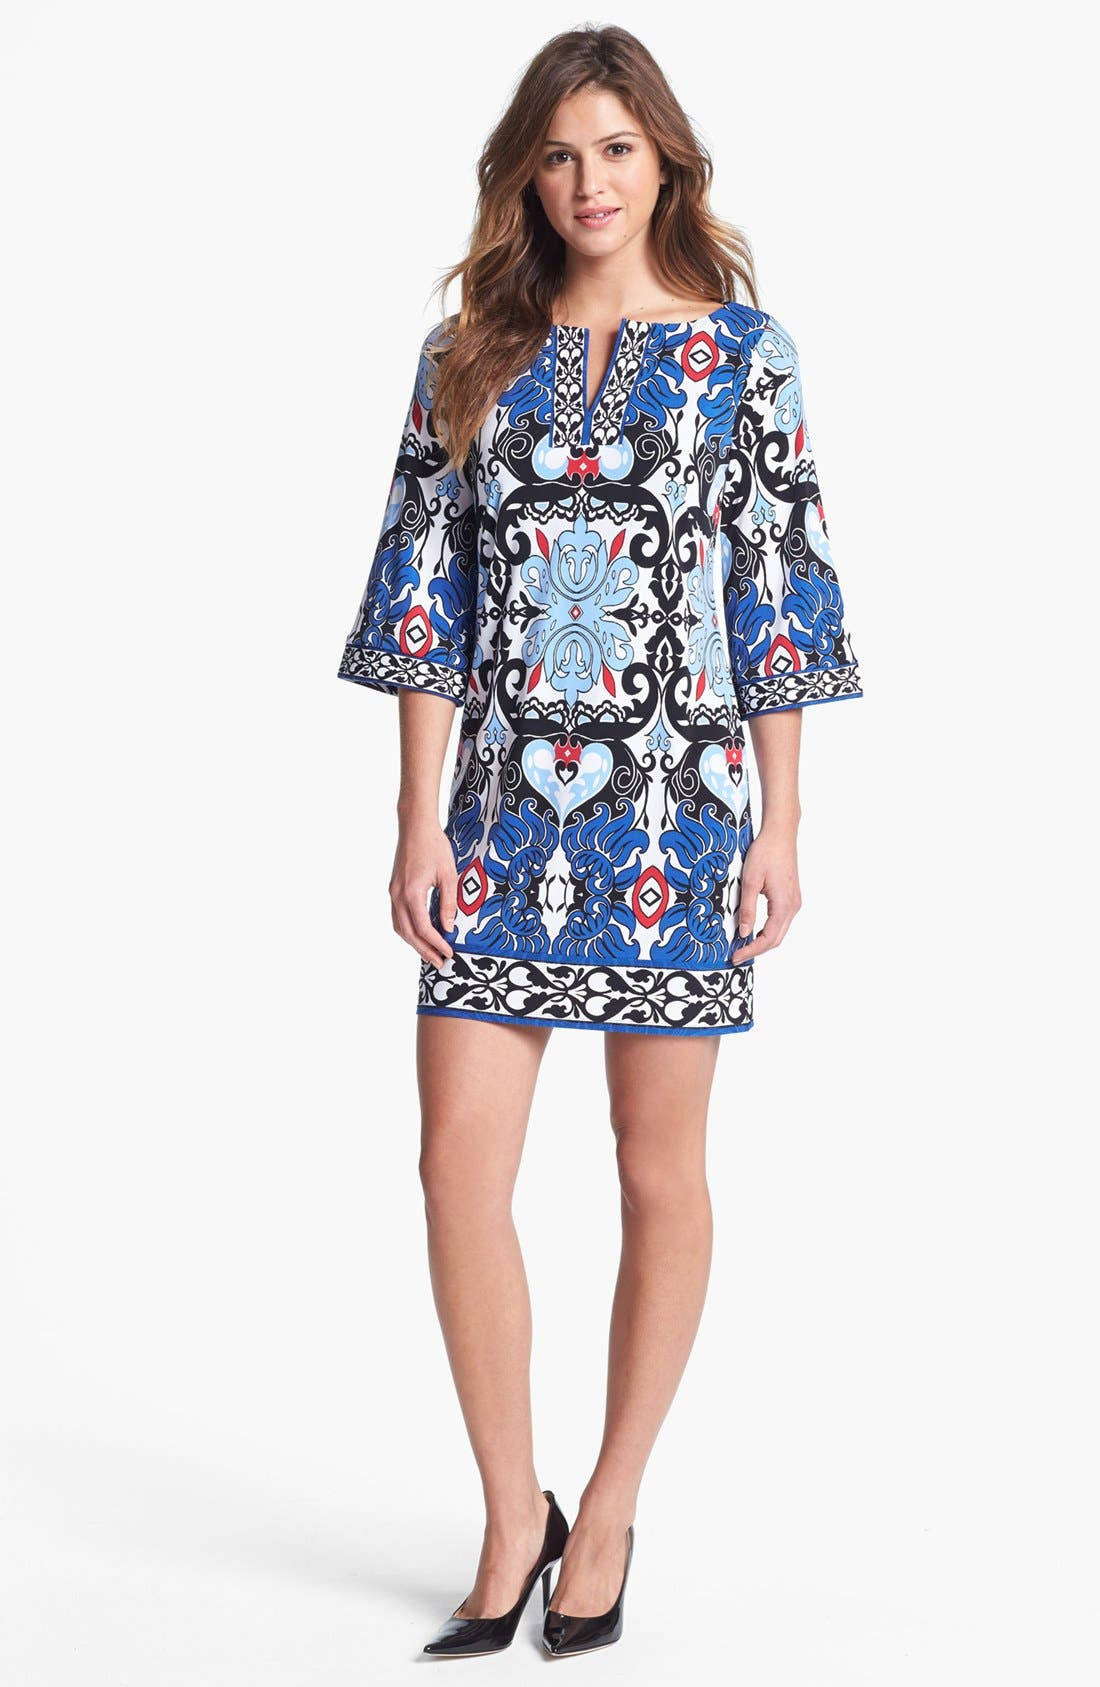 Alternate Image 1 Selected - Laundry by Shelli Segal Print Jersey Shift Dress (Petite)